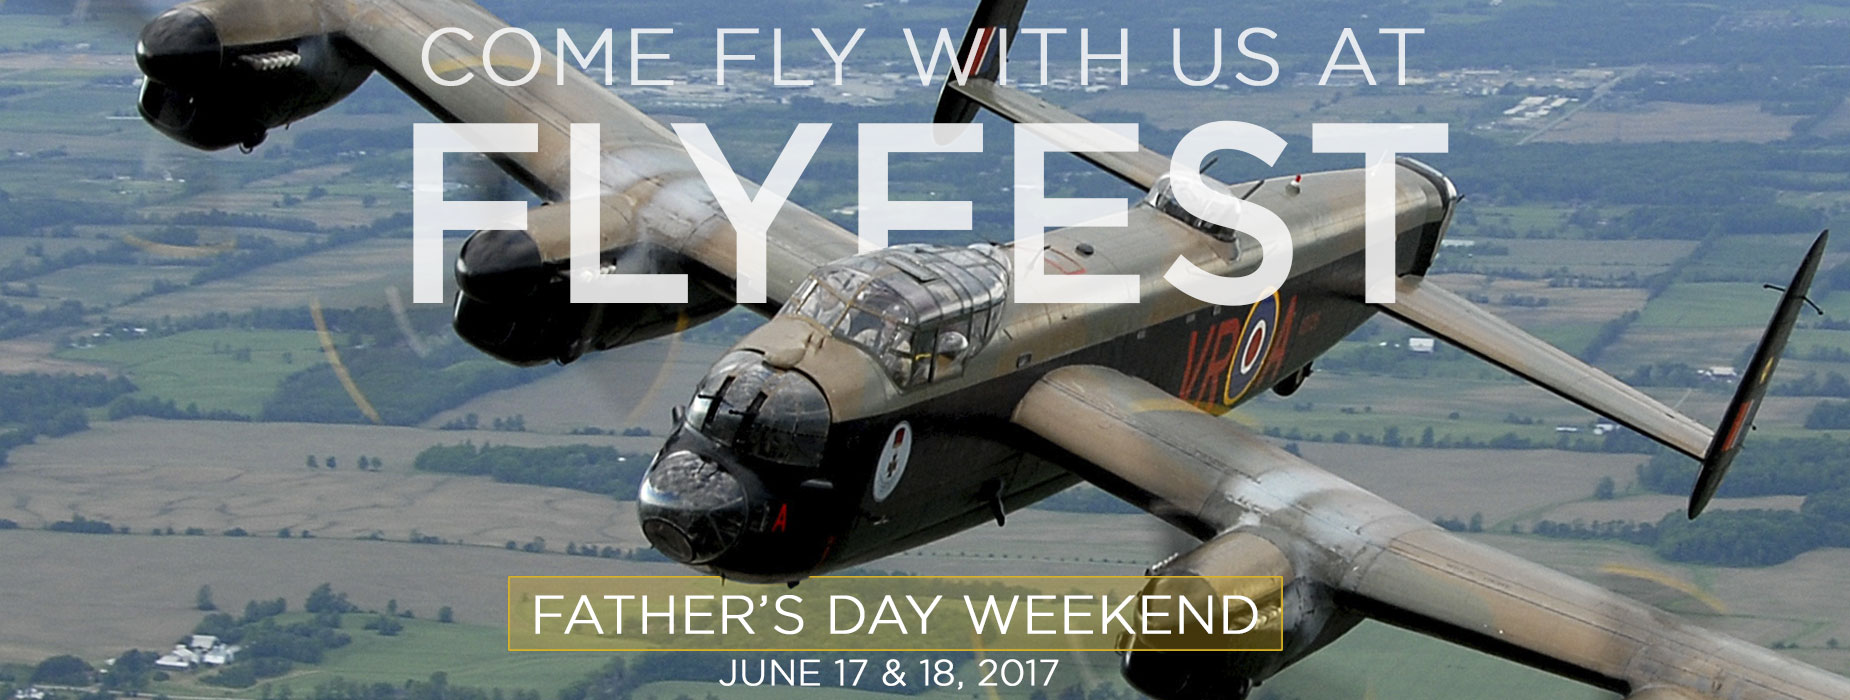 Banner Image for the Come fly with us at FLYFEST event